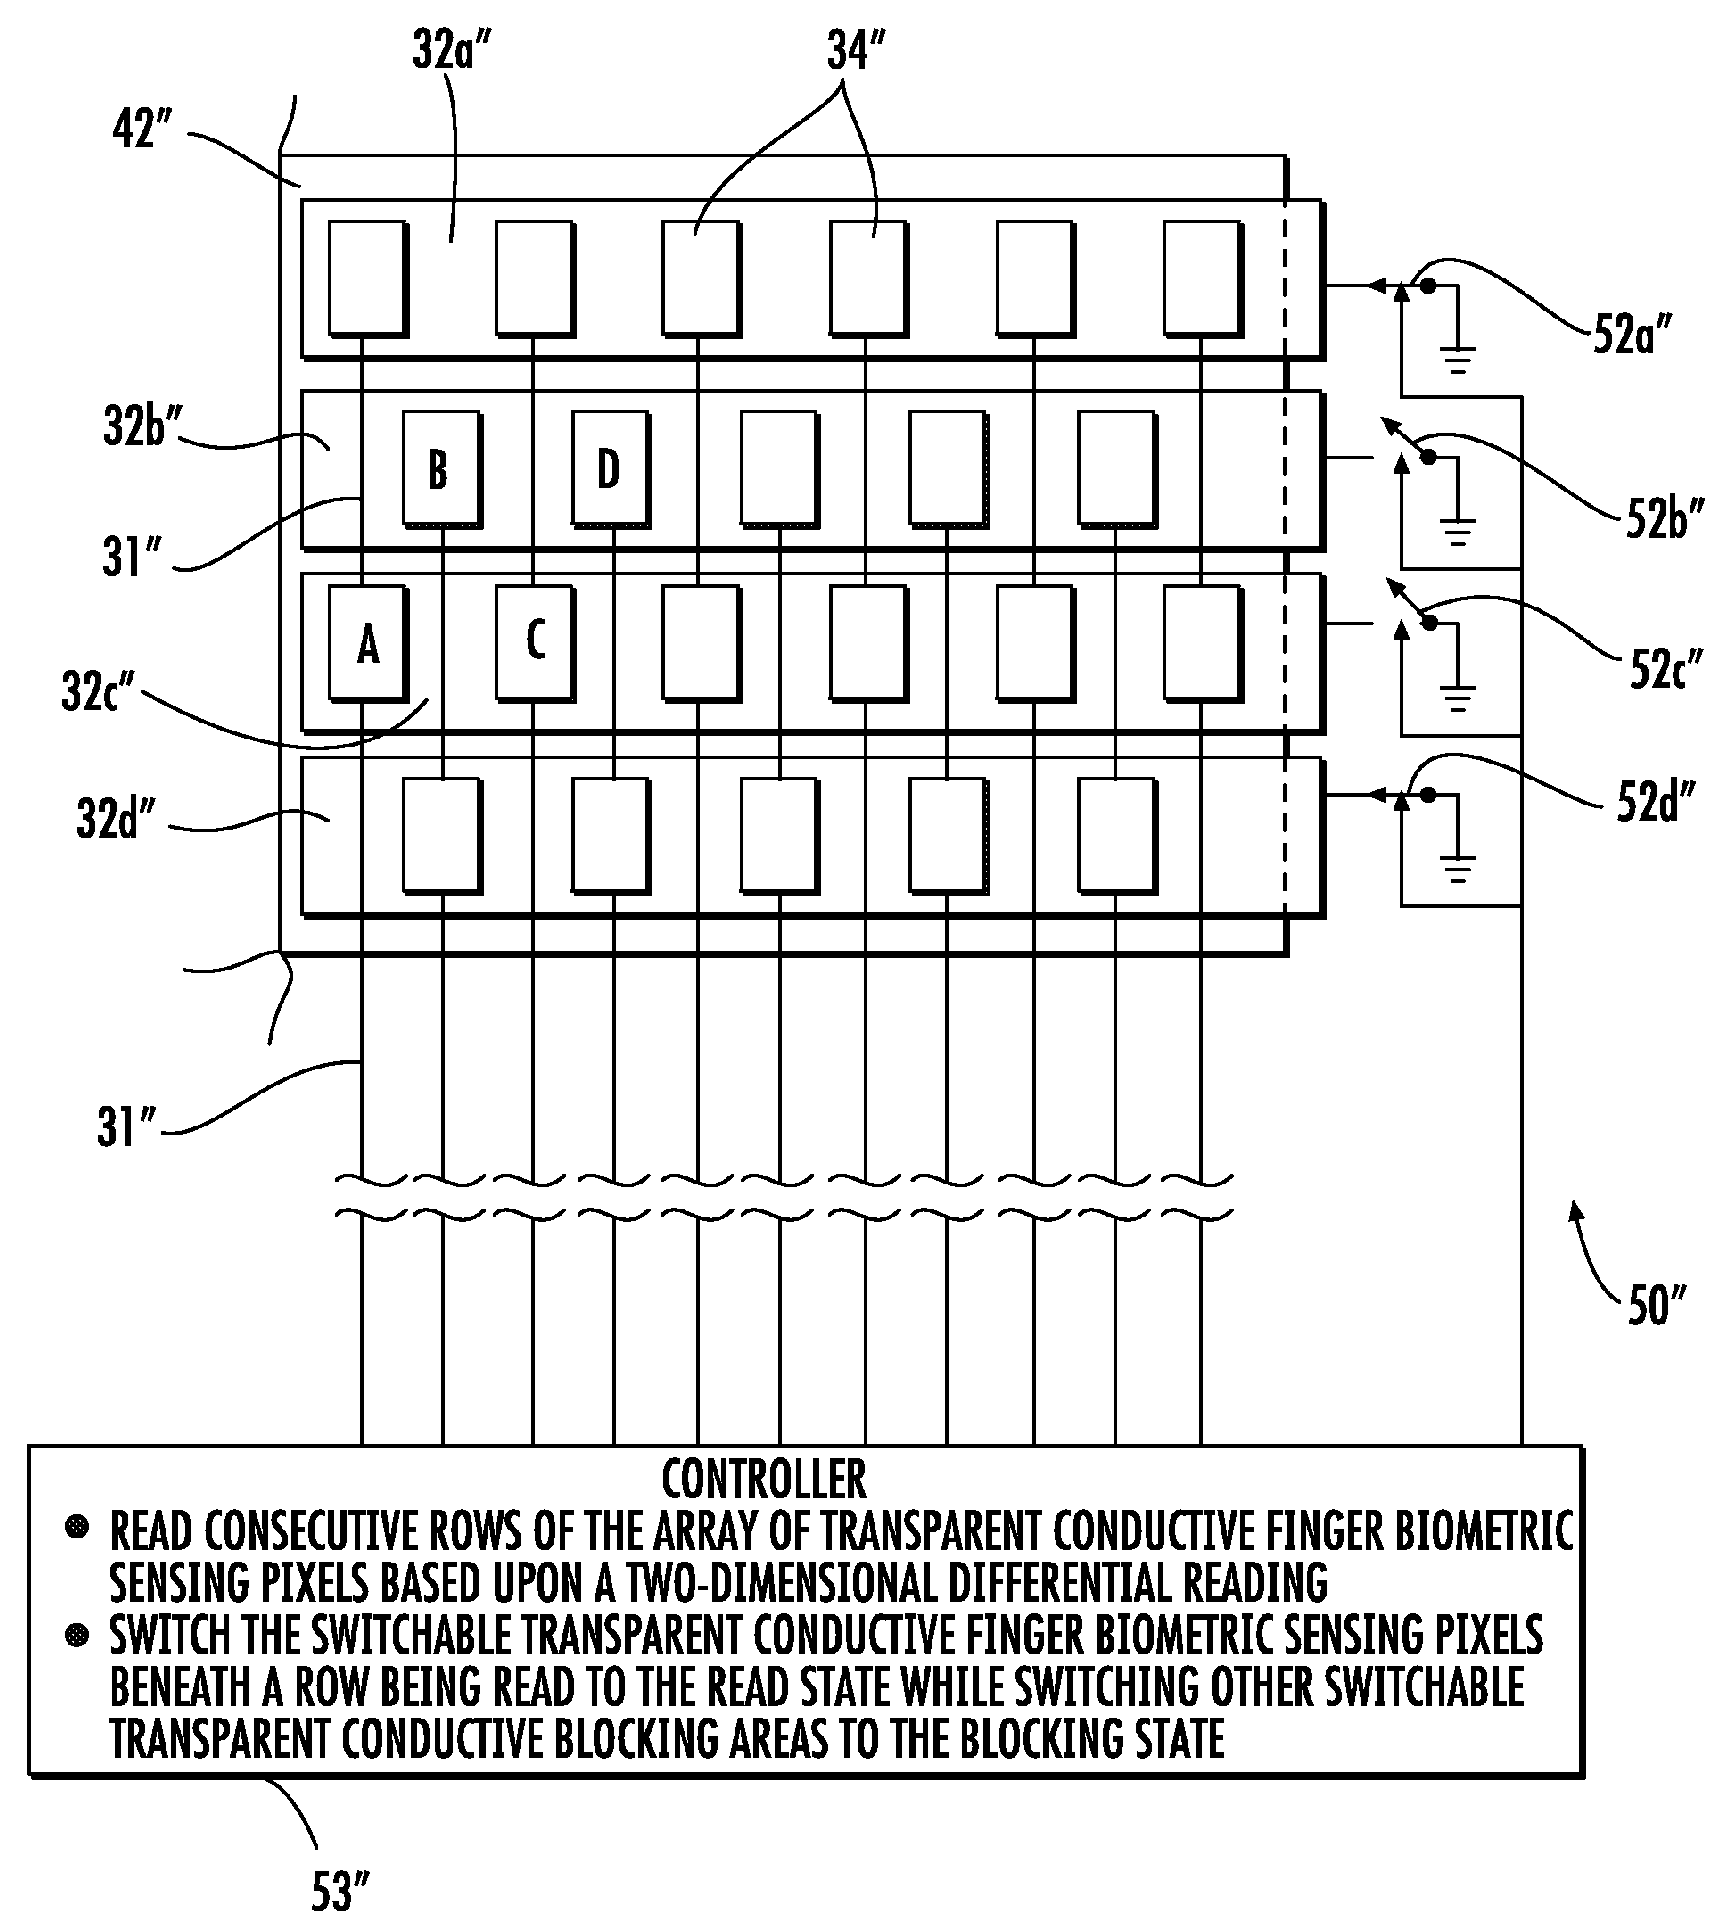 Apple Awarded Key Iphone 8 Patents For In Screen Touch Id Edge To Macbook Pro Diagram According The Description An May Support Ipad And Devices Late 2016 Is First